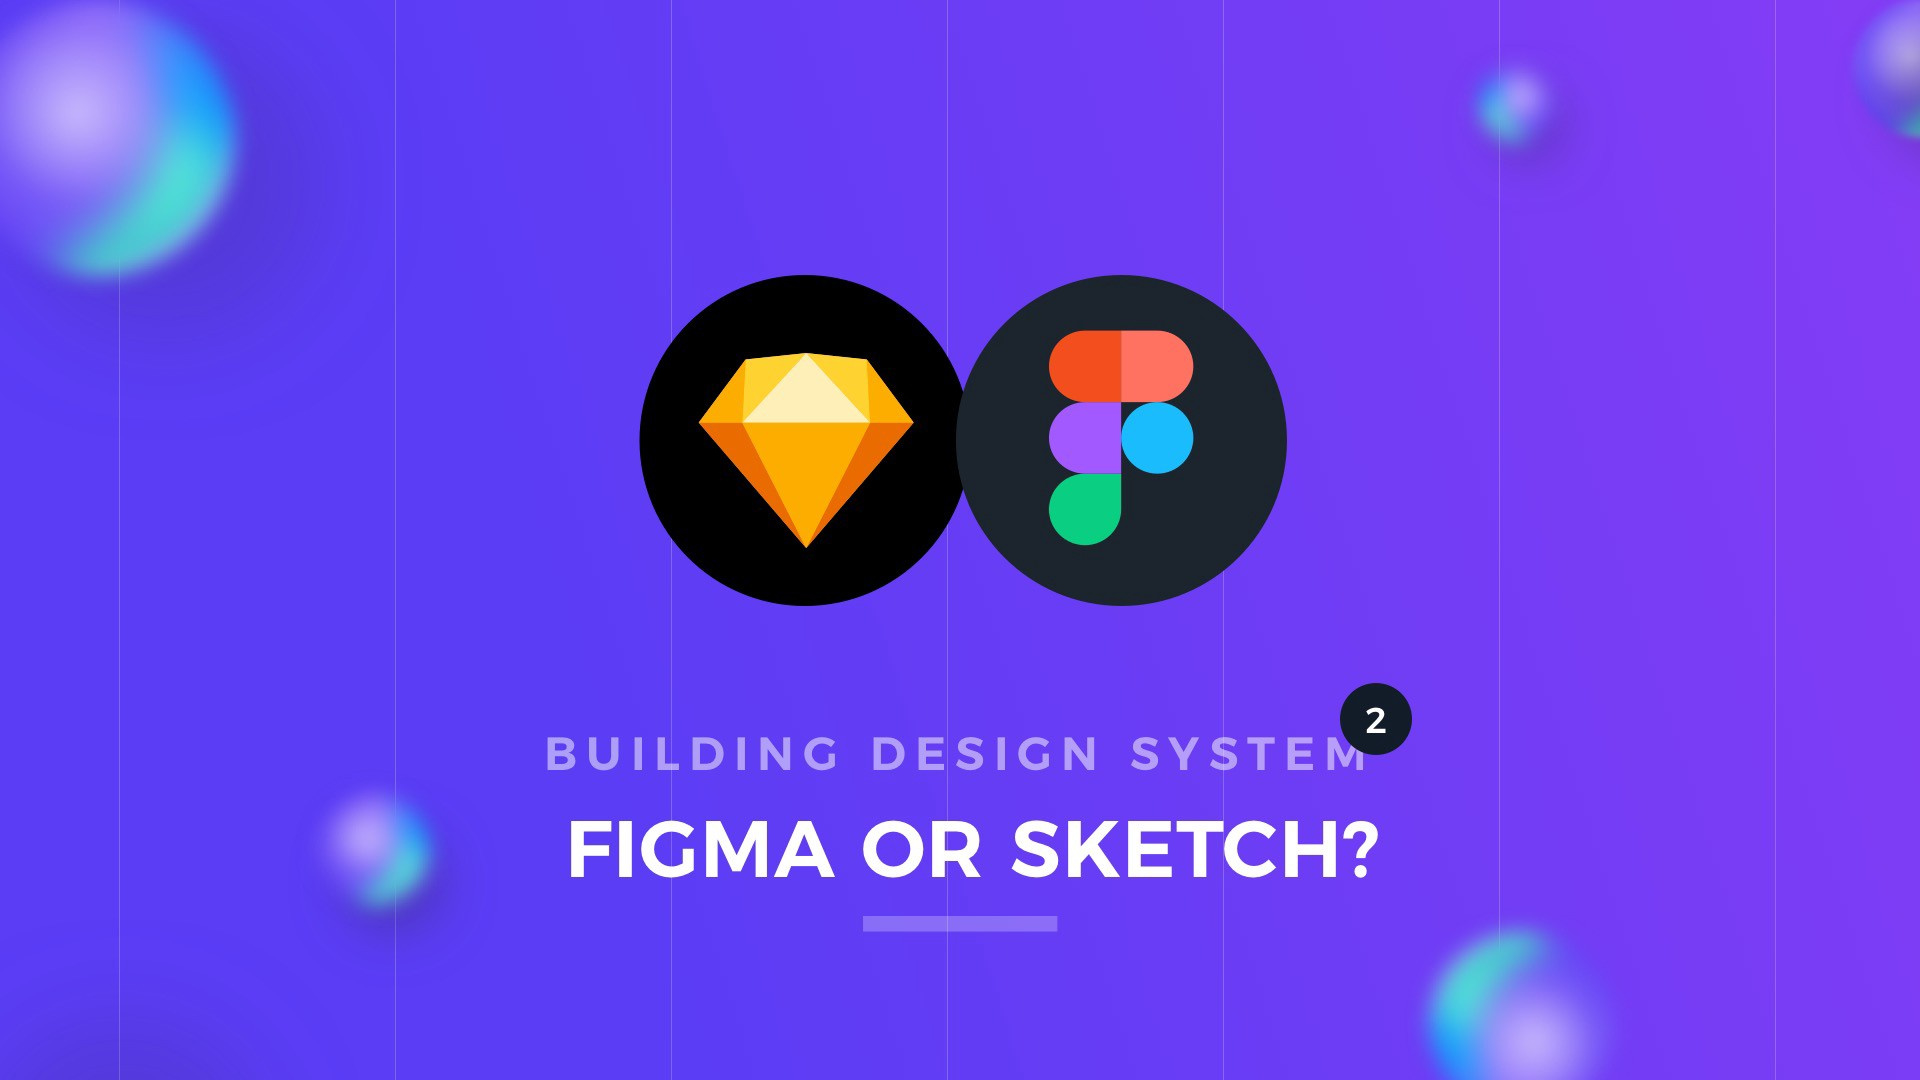 Figma or Sketch—how to build design system